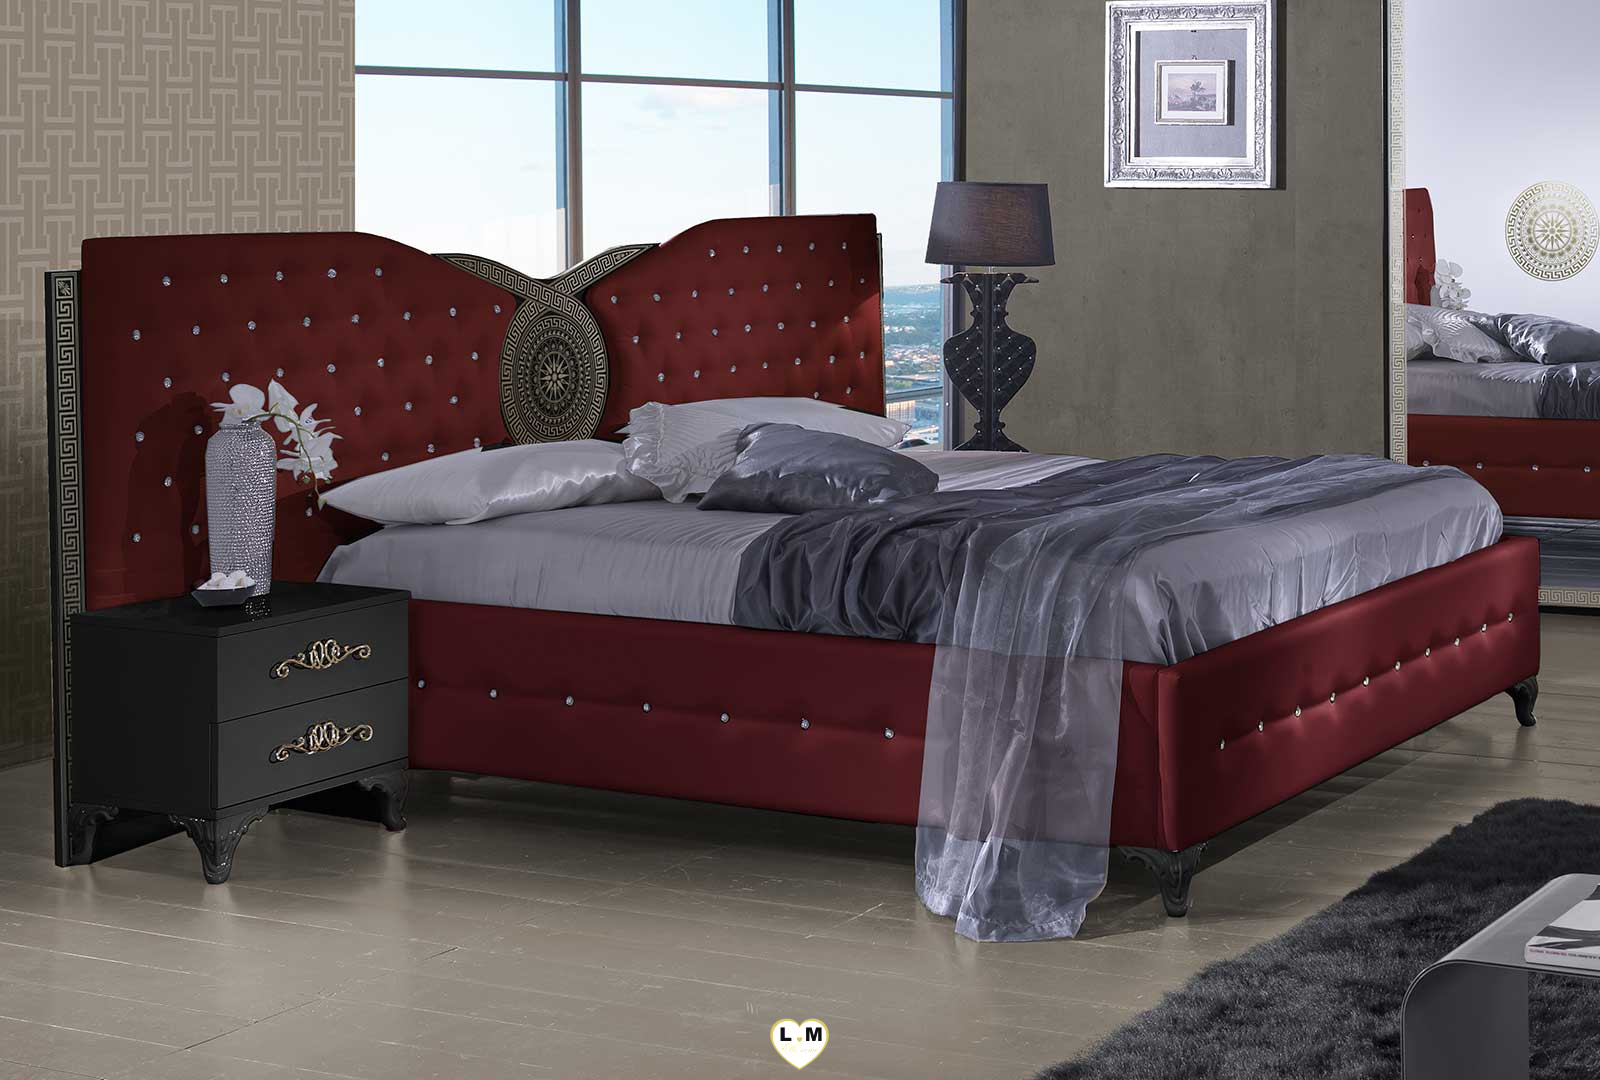 tana bordeaux et noir chambre a coucher le lit lignemeuble com. Black Bedroom Furniture Sets. Home Design Ideas